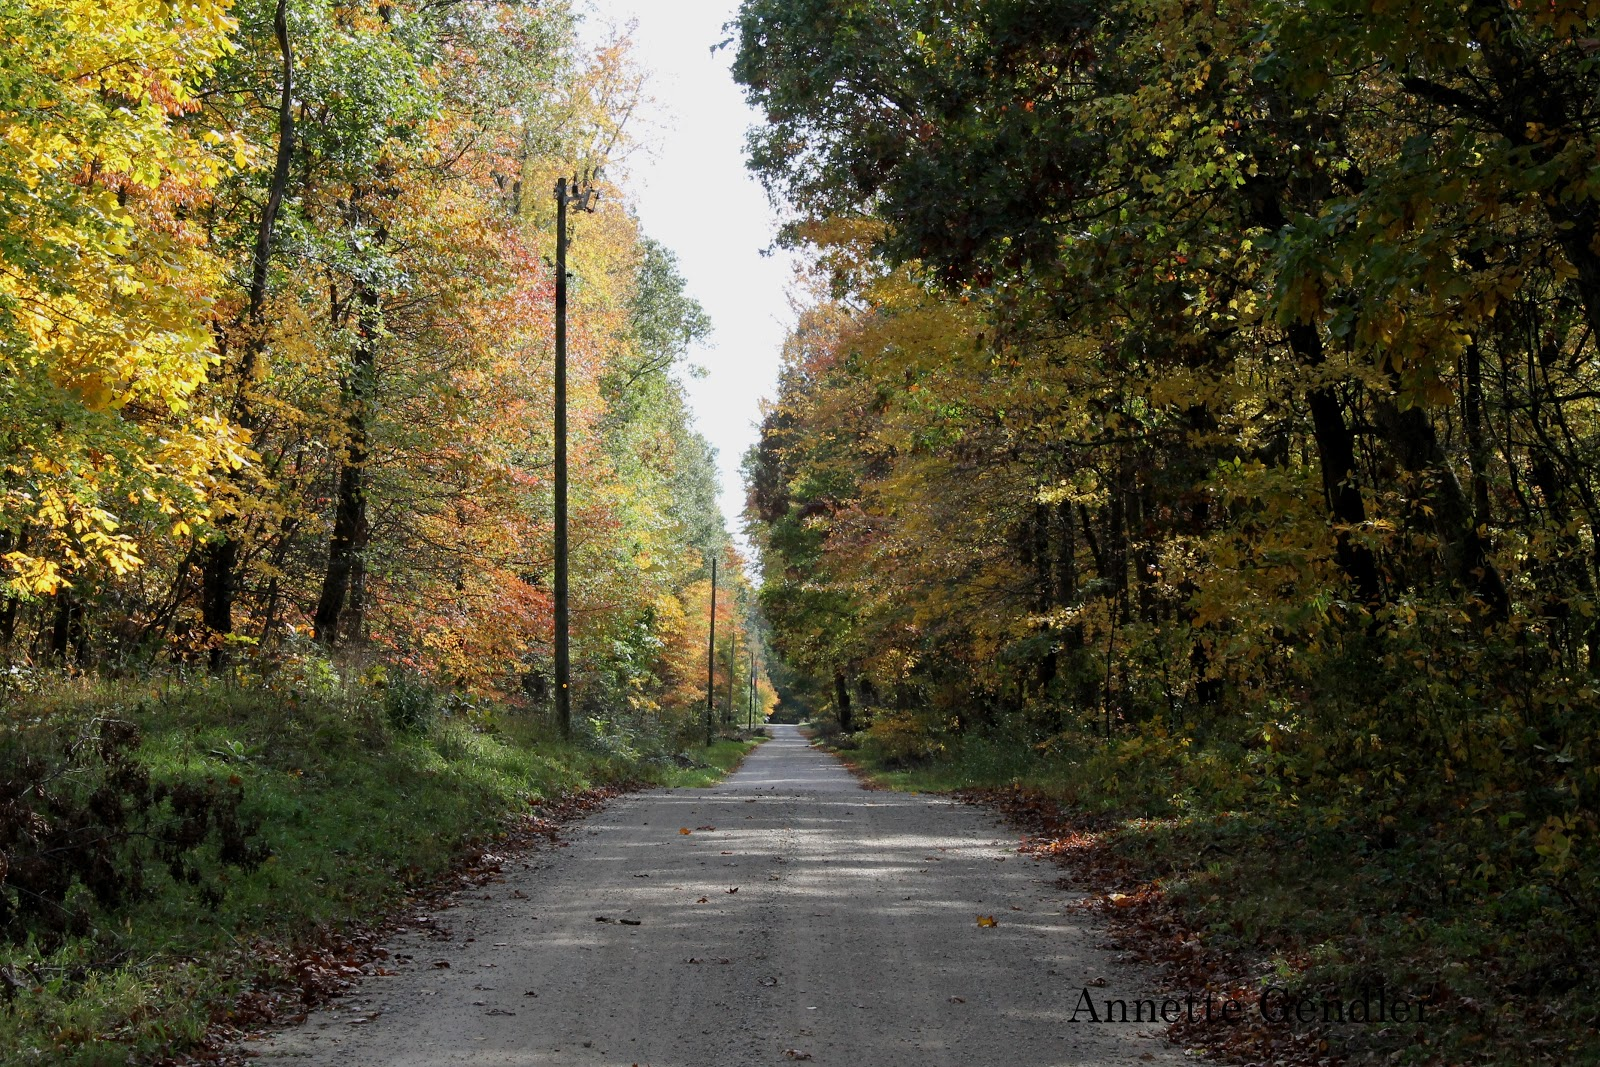 country road essay If country roads is an example of how well west virginians understand state geography is it any wonder that the rest of the country thinks of west virginians as ignorant, backwoods, hillbillies becky rankin from huntington,.